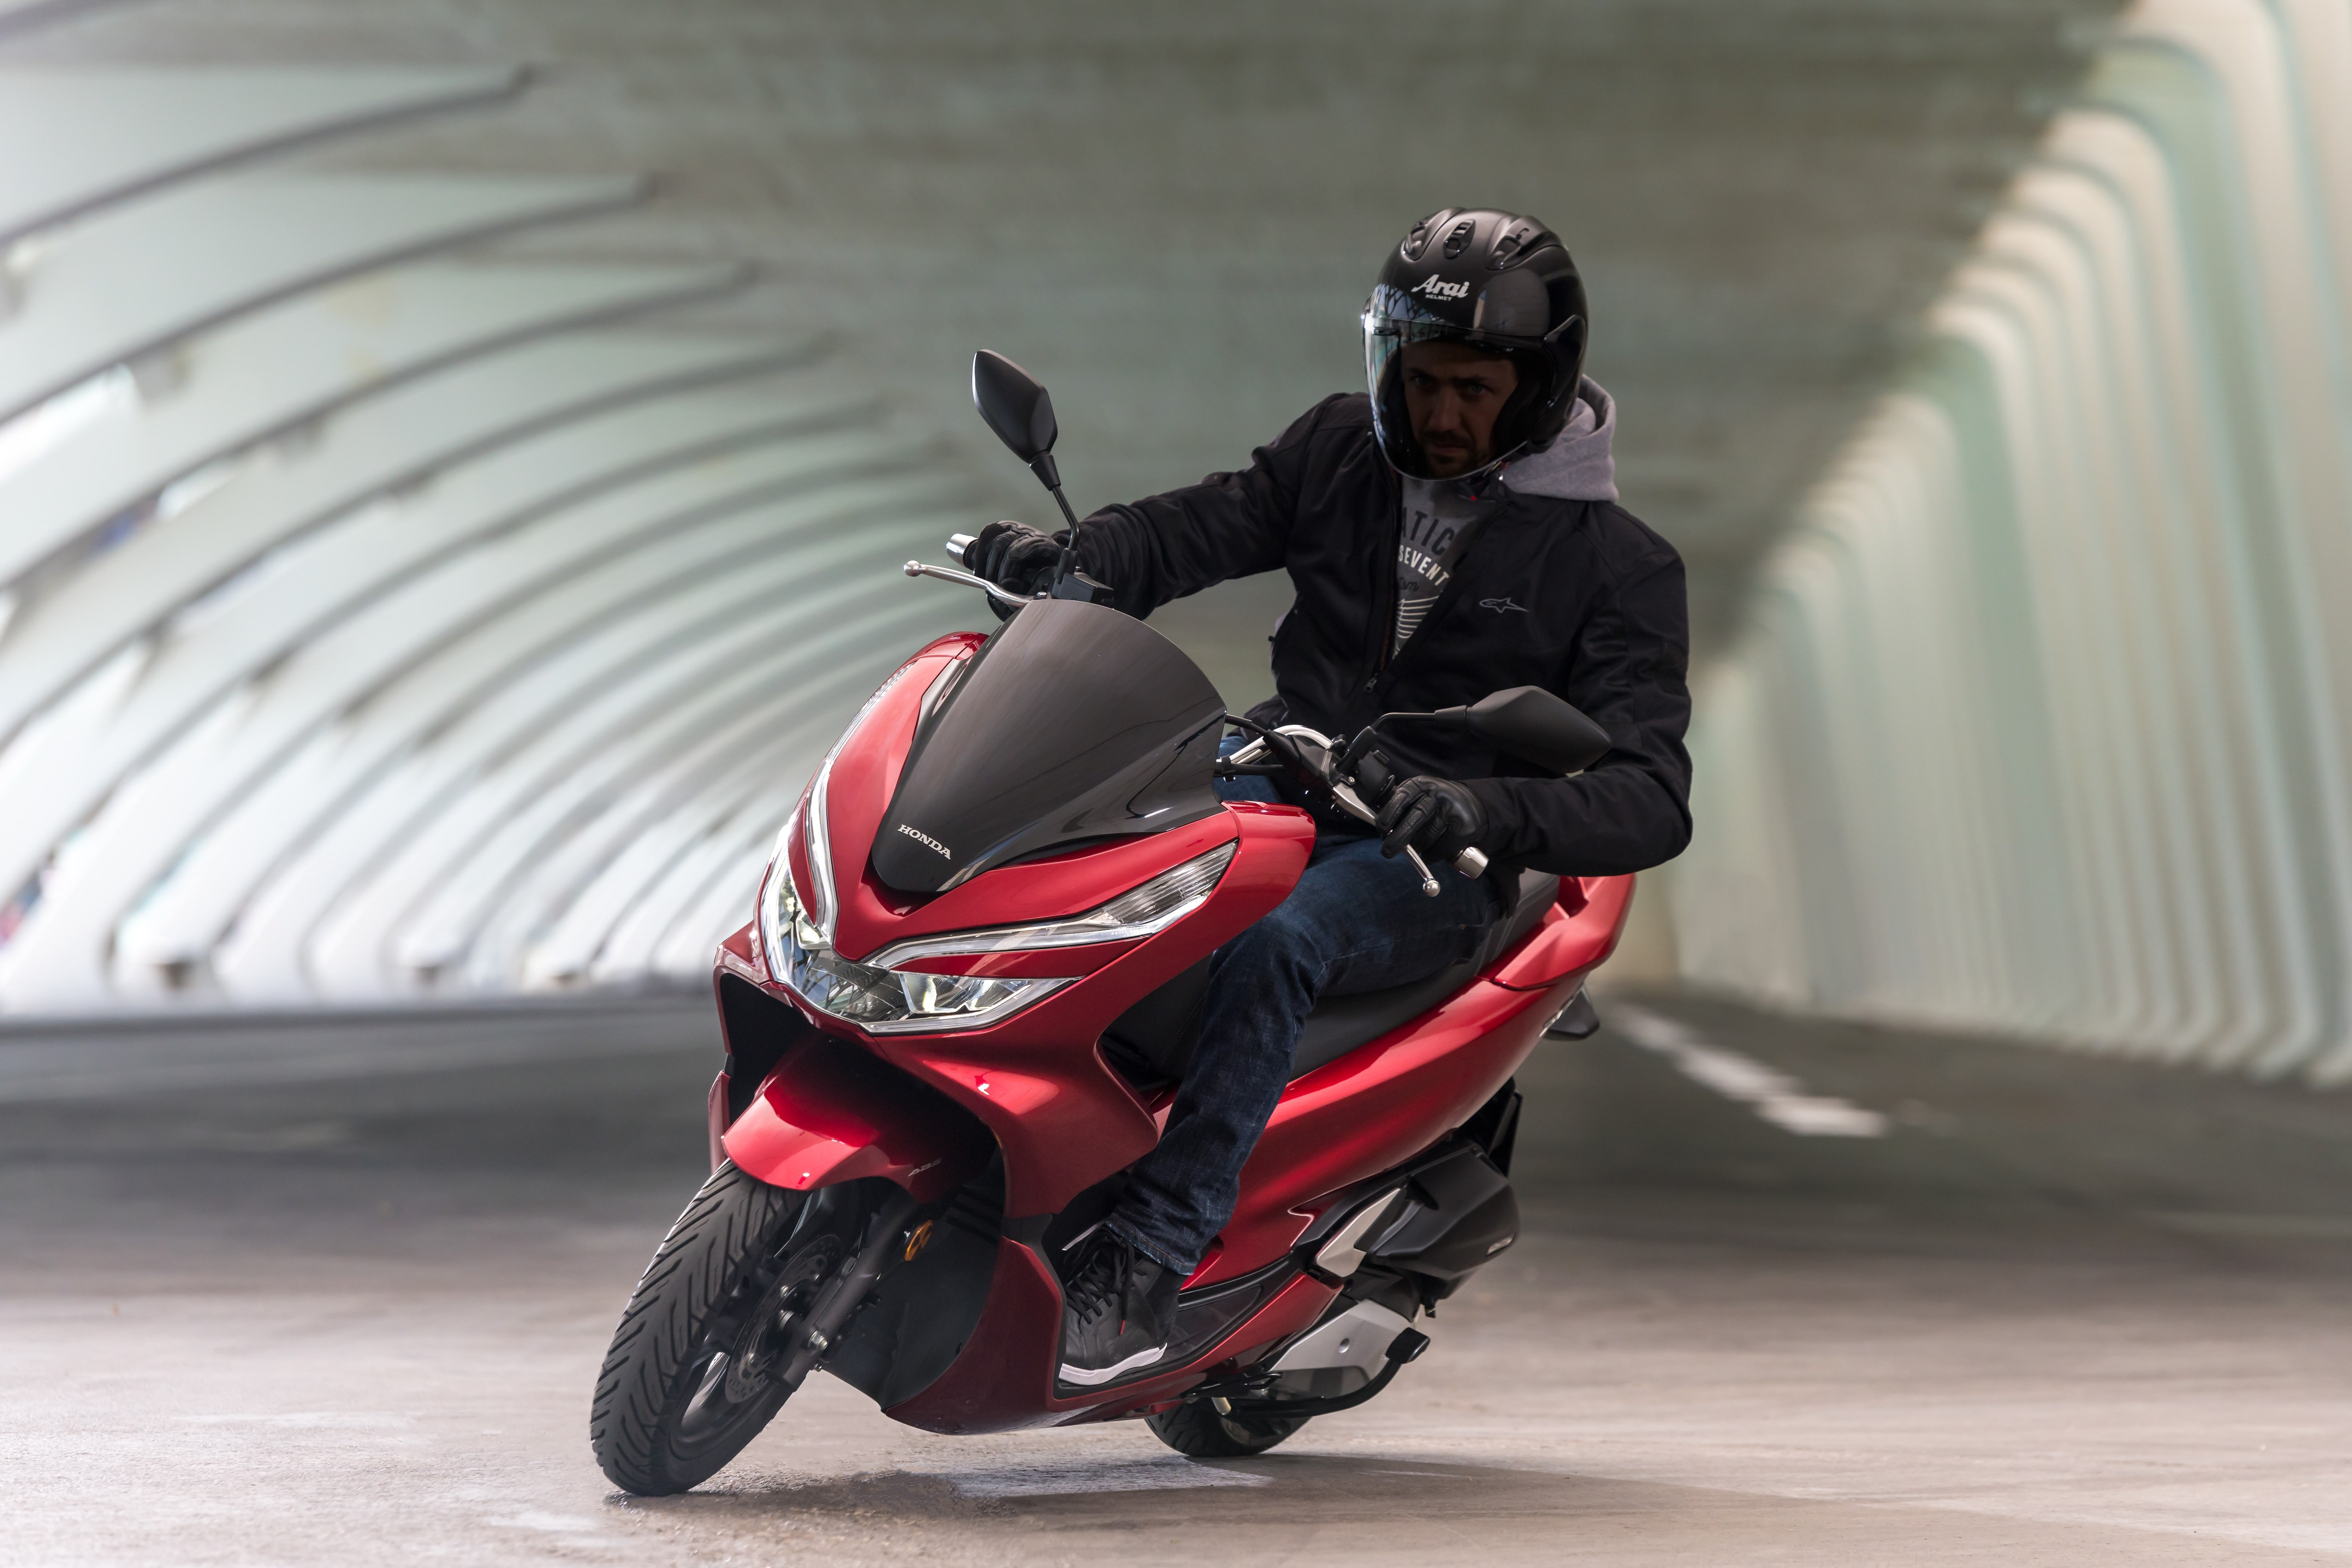 The Pcx125 And Cb125r Are Now Back In At Colwyn Bay Honda